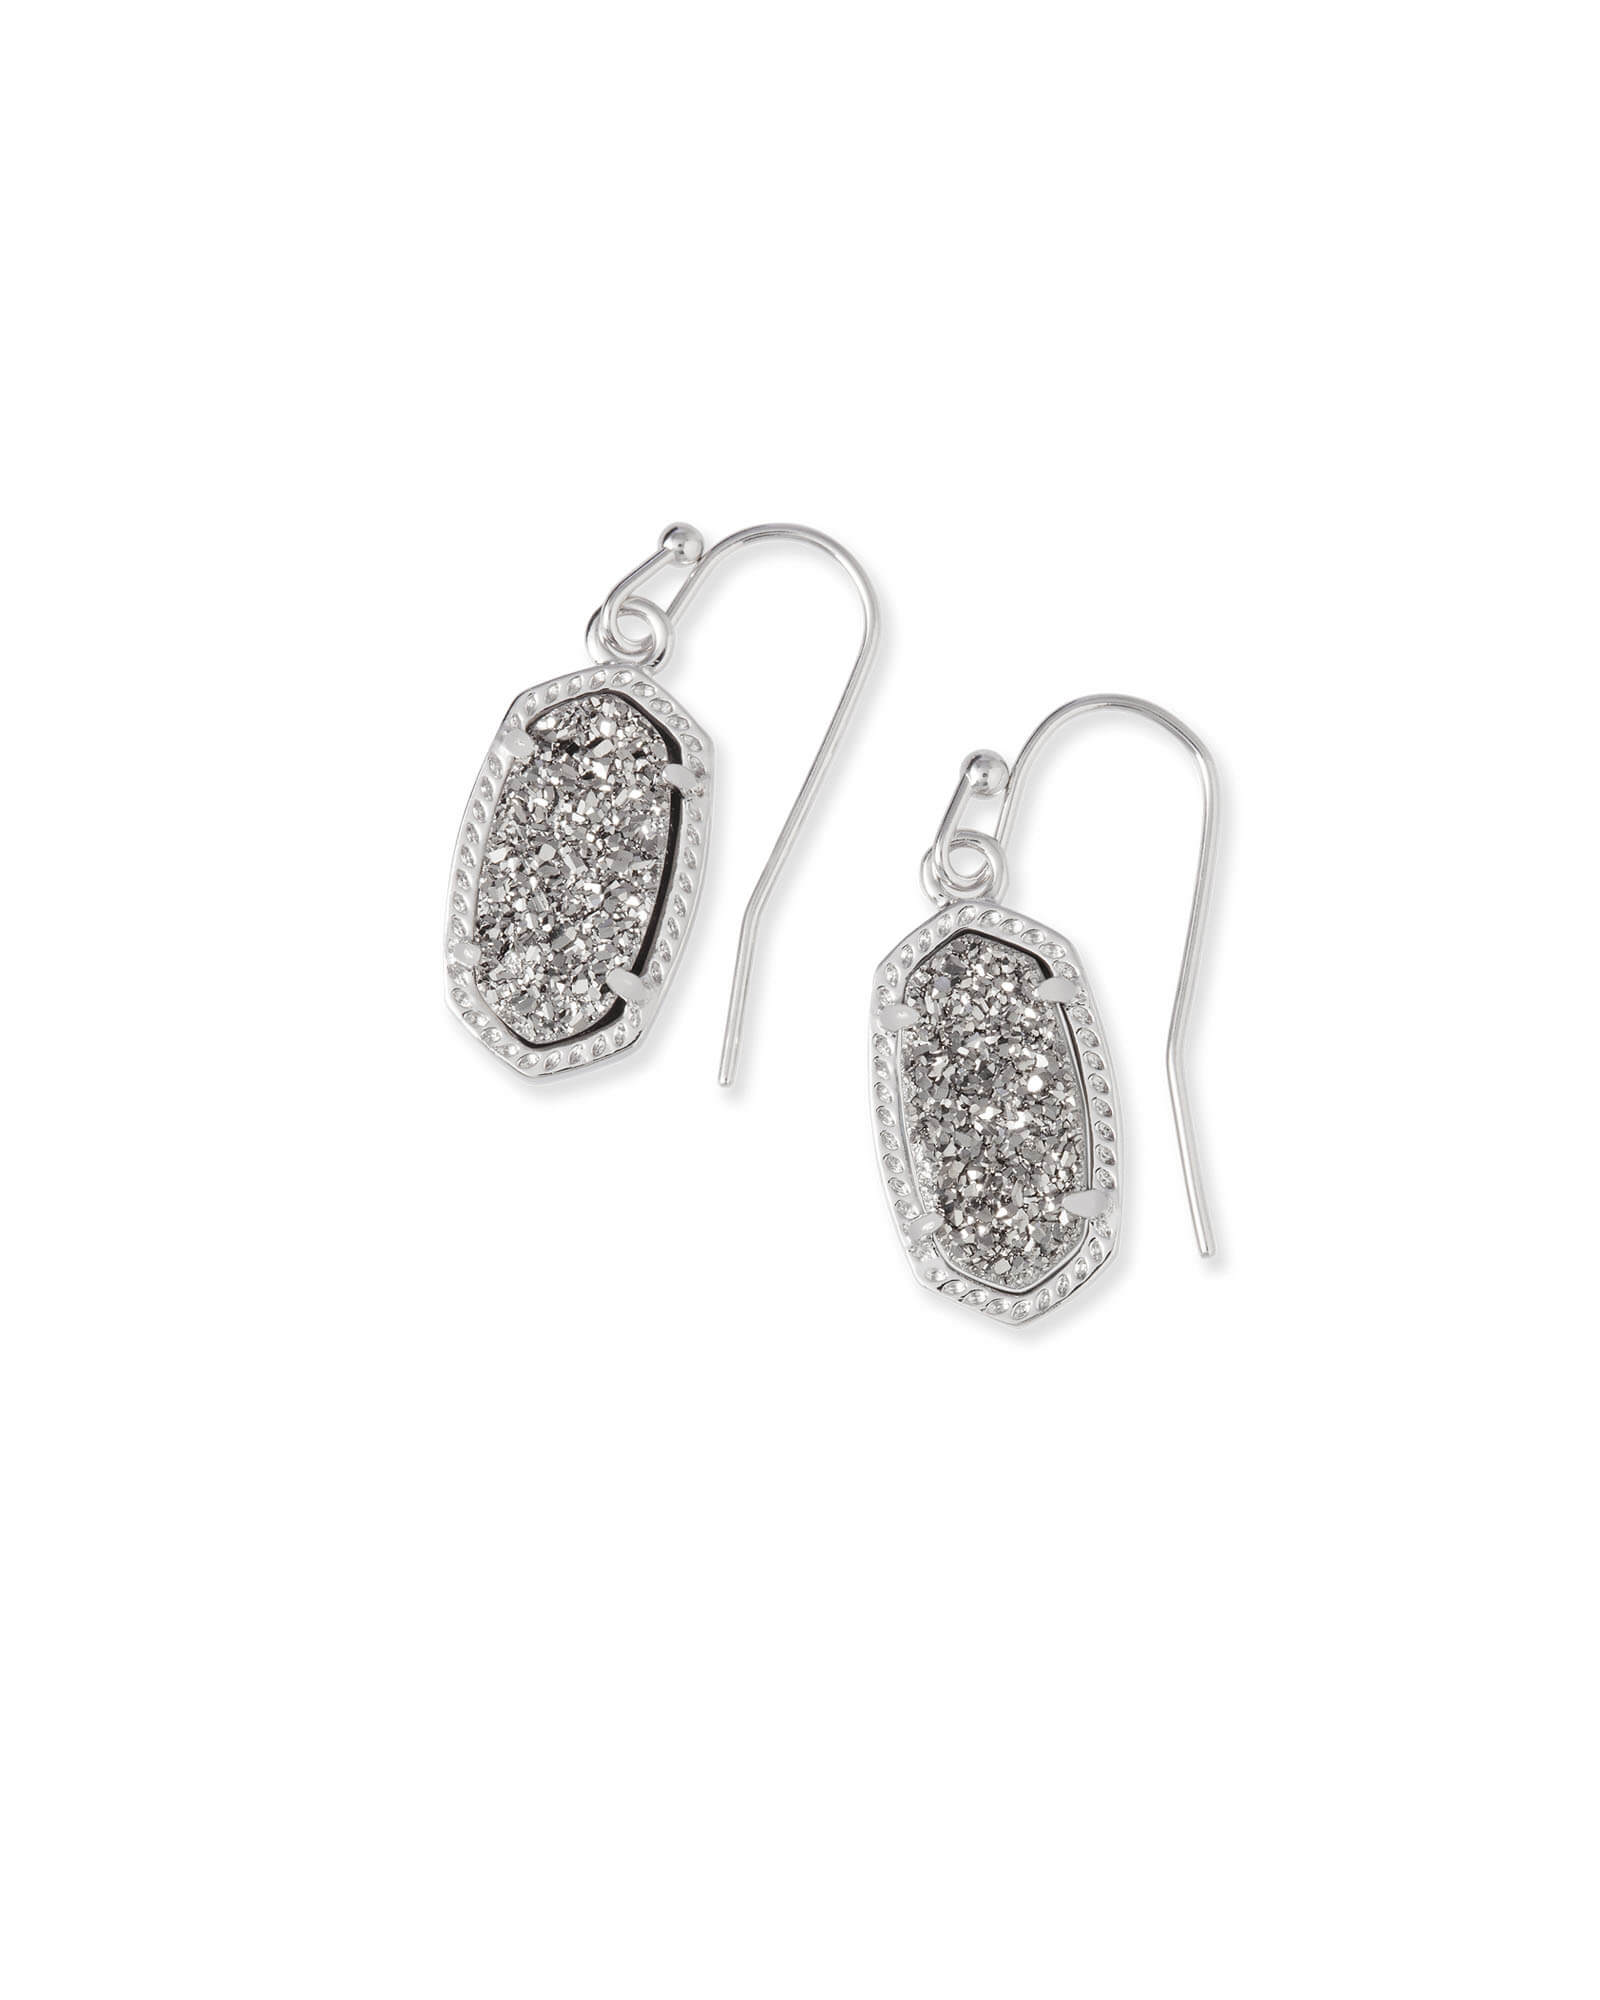 81474244c Lee Silver Drop Earrings in Platinum Drusy | Kendra Scott